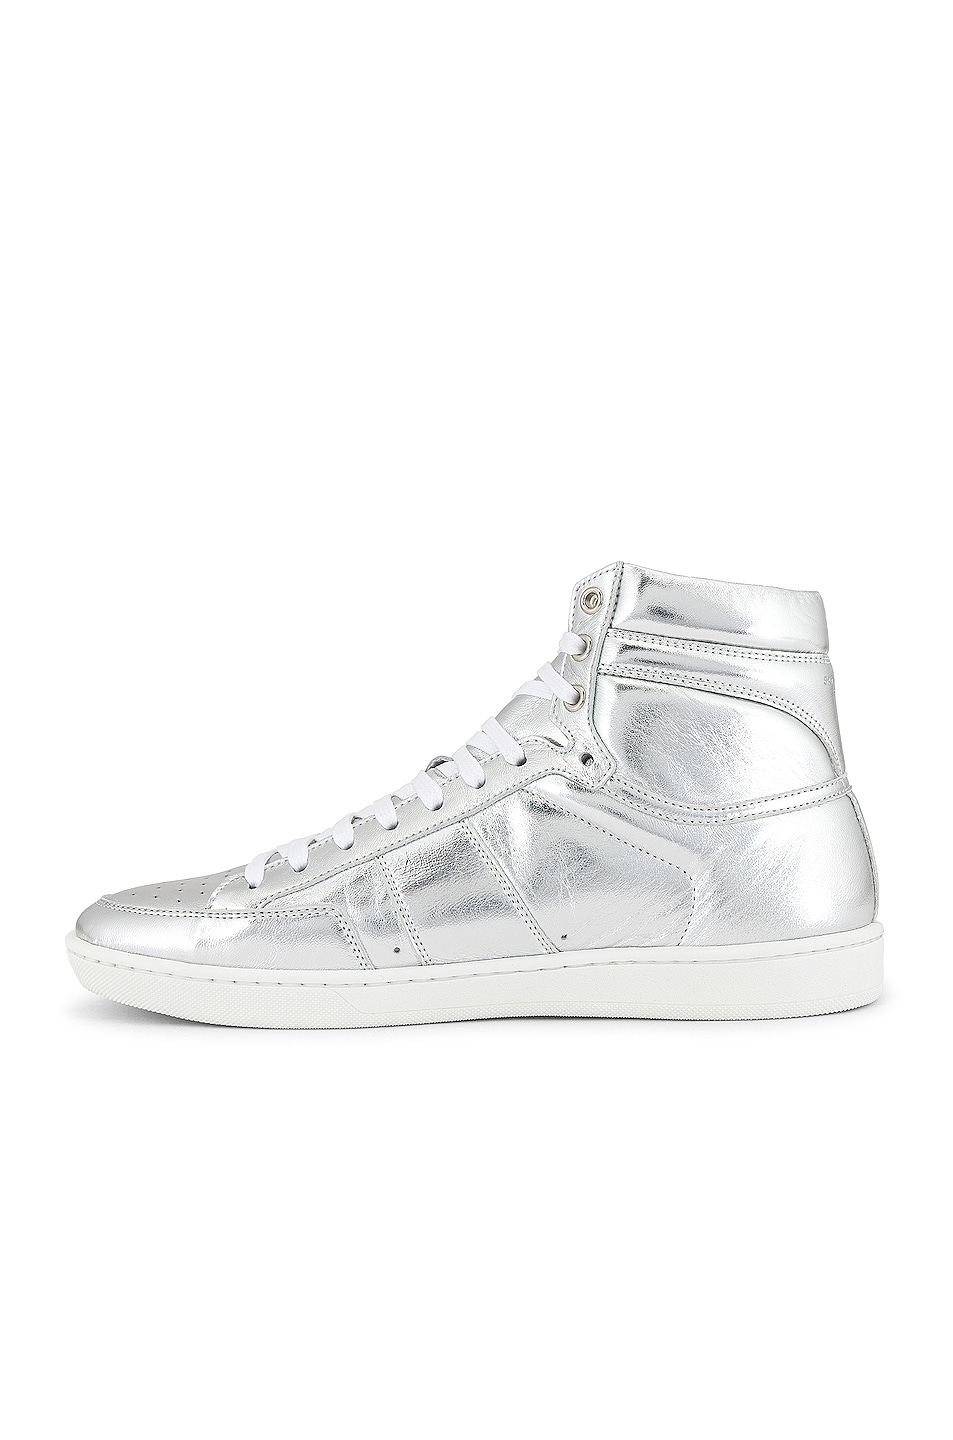 Image 5 of Saint Laurent Leather Up Sneaker in Silver